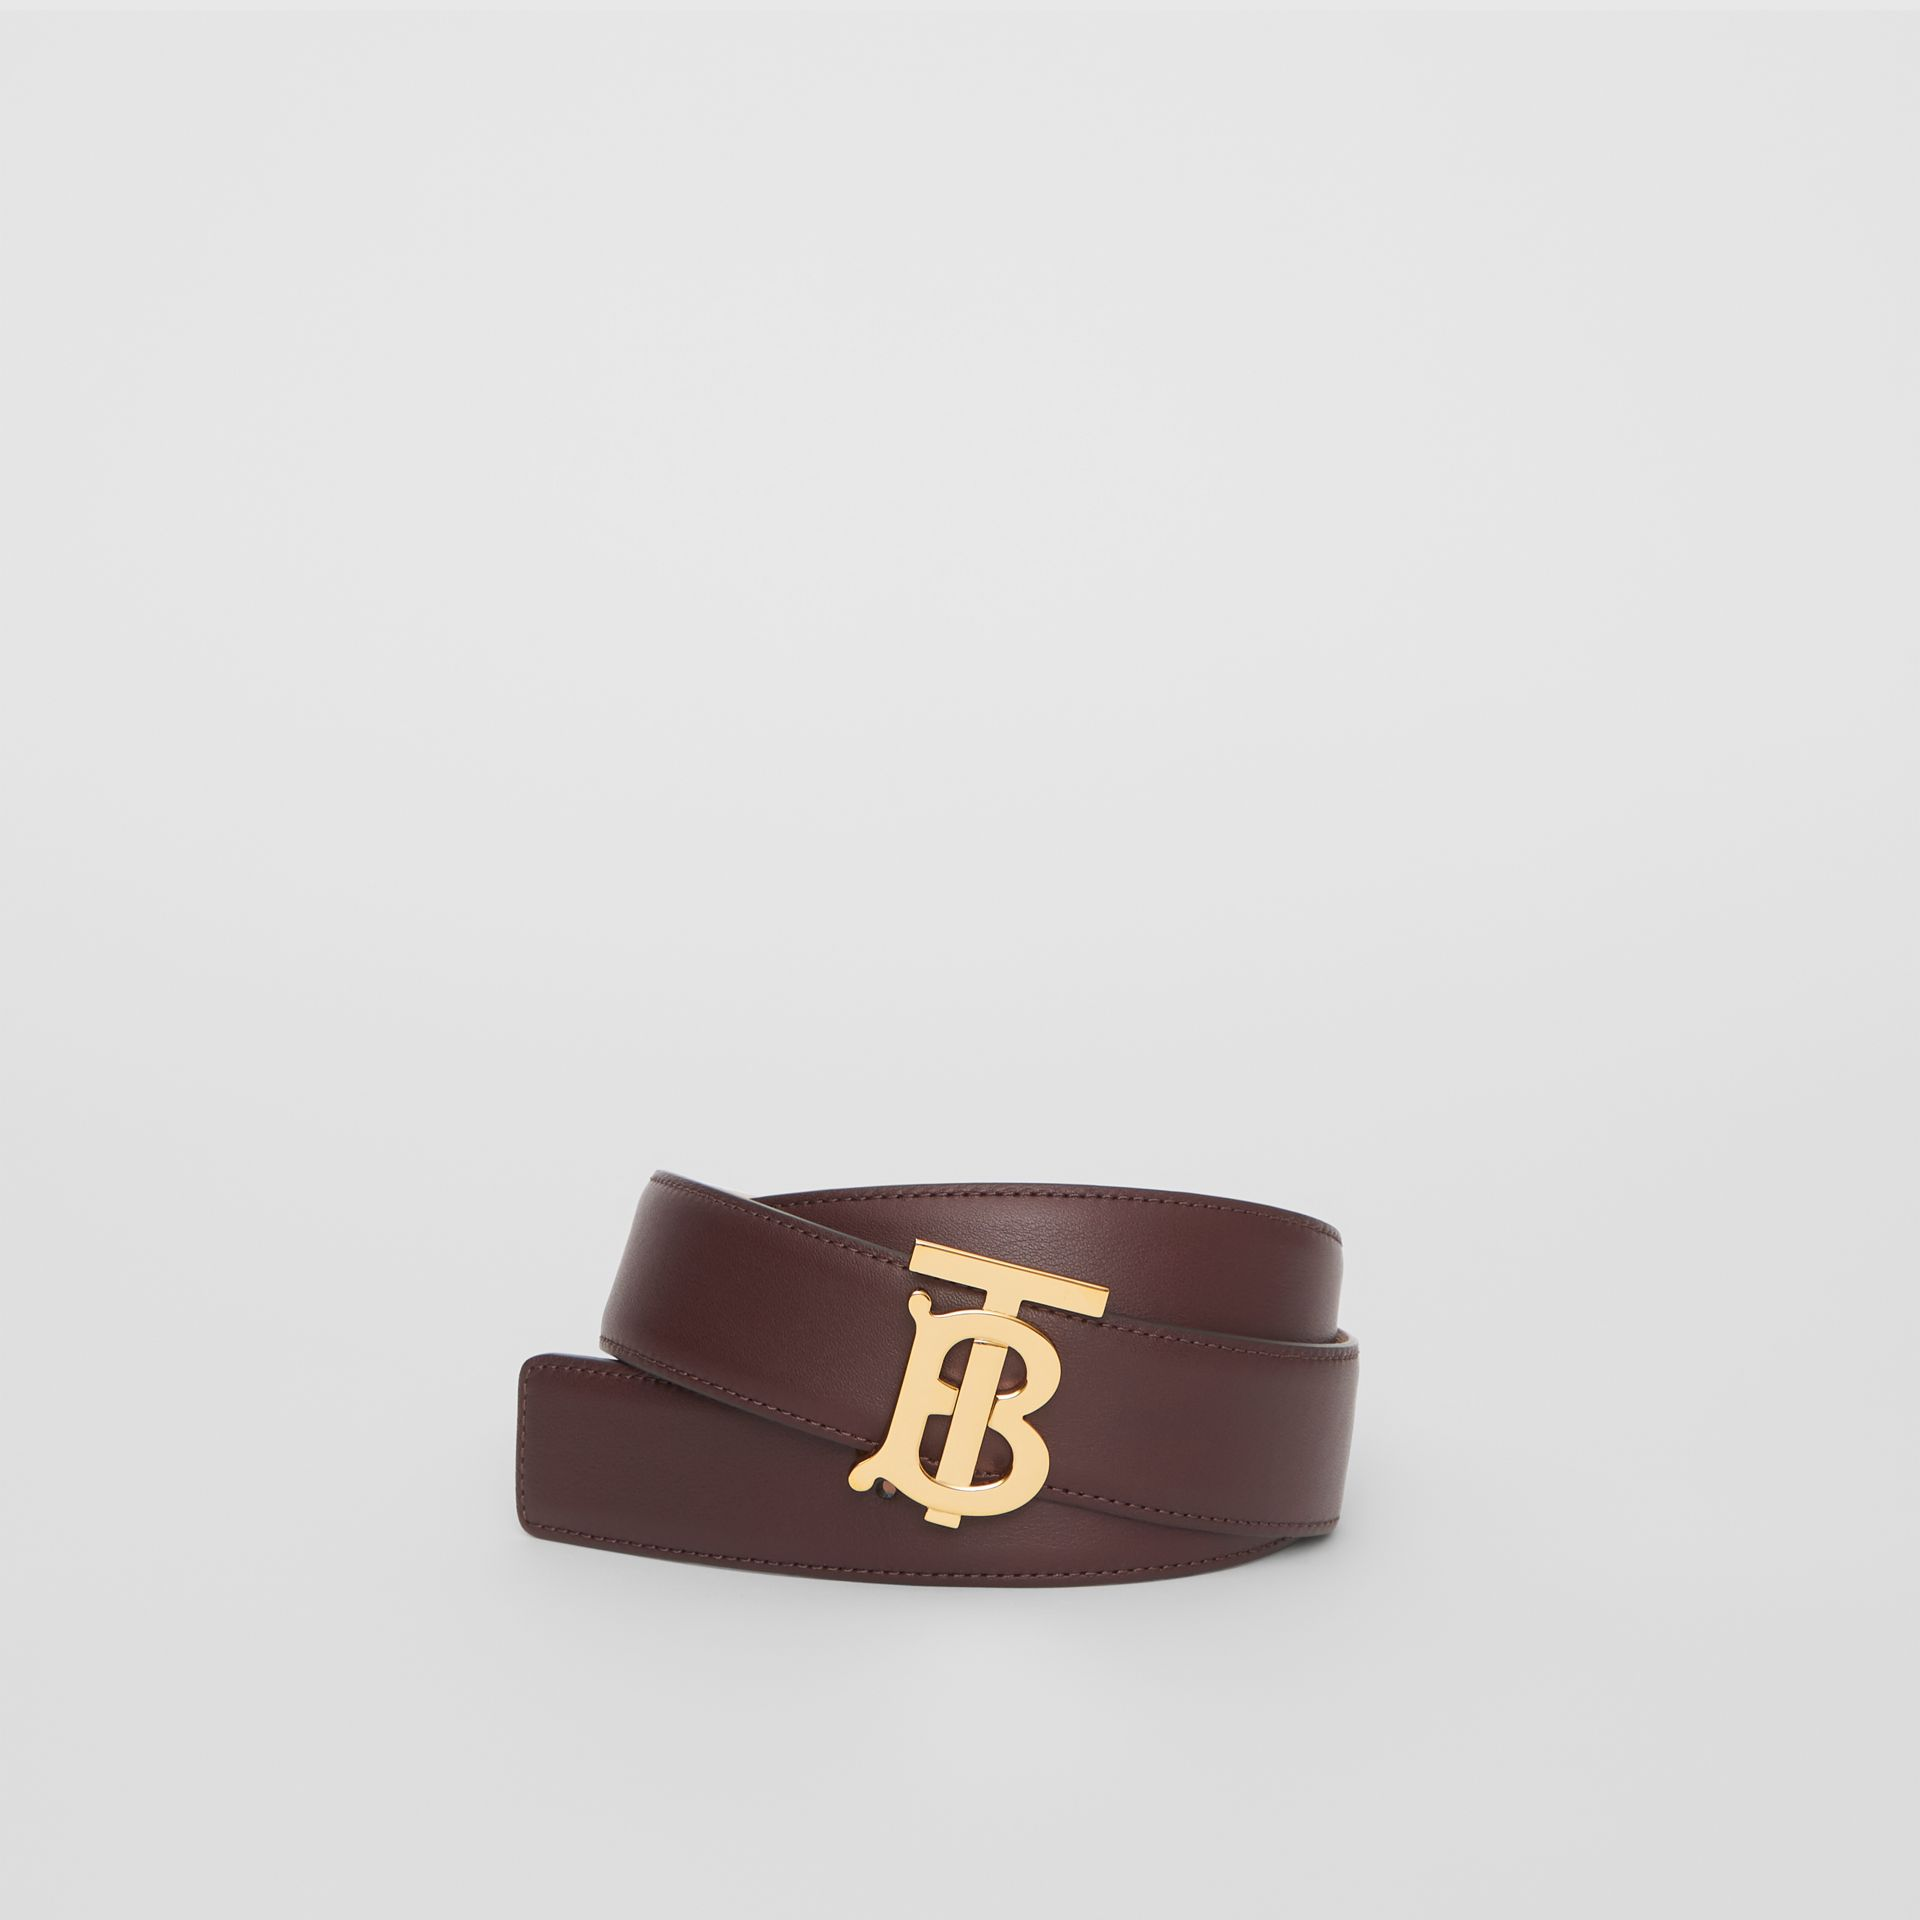 Ceinture en cuir réversible Monogram (Oxblood/beige Rose) - Femme | Burberry Canada - photo de la galerie 0